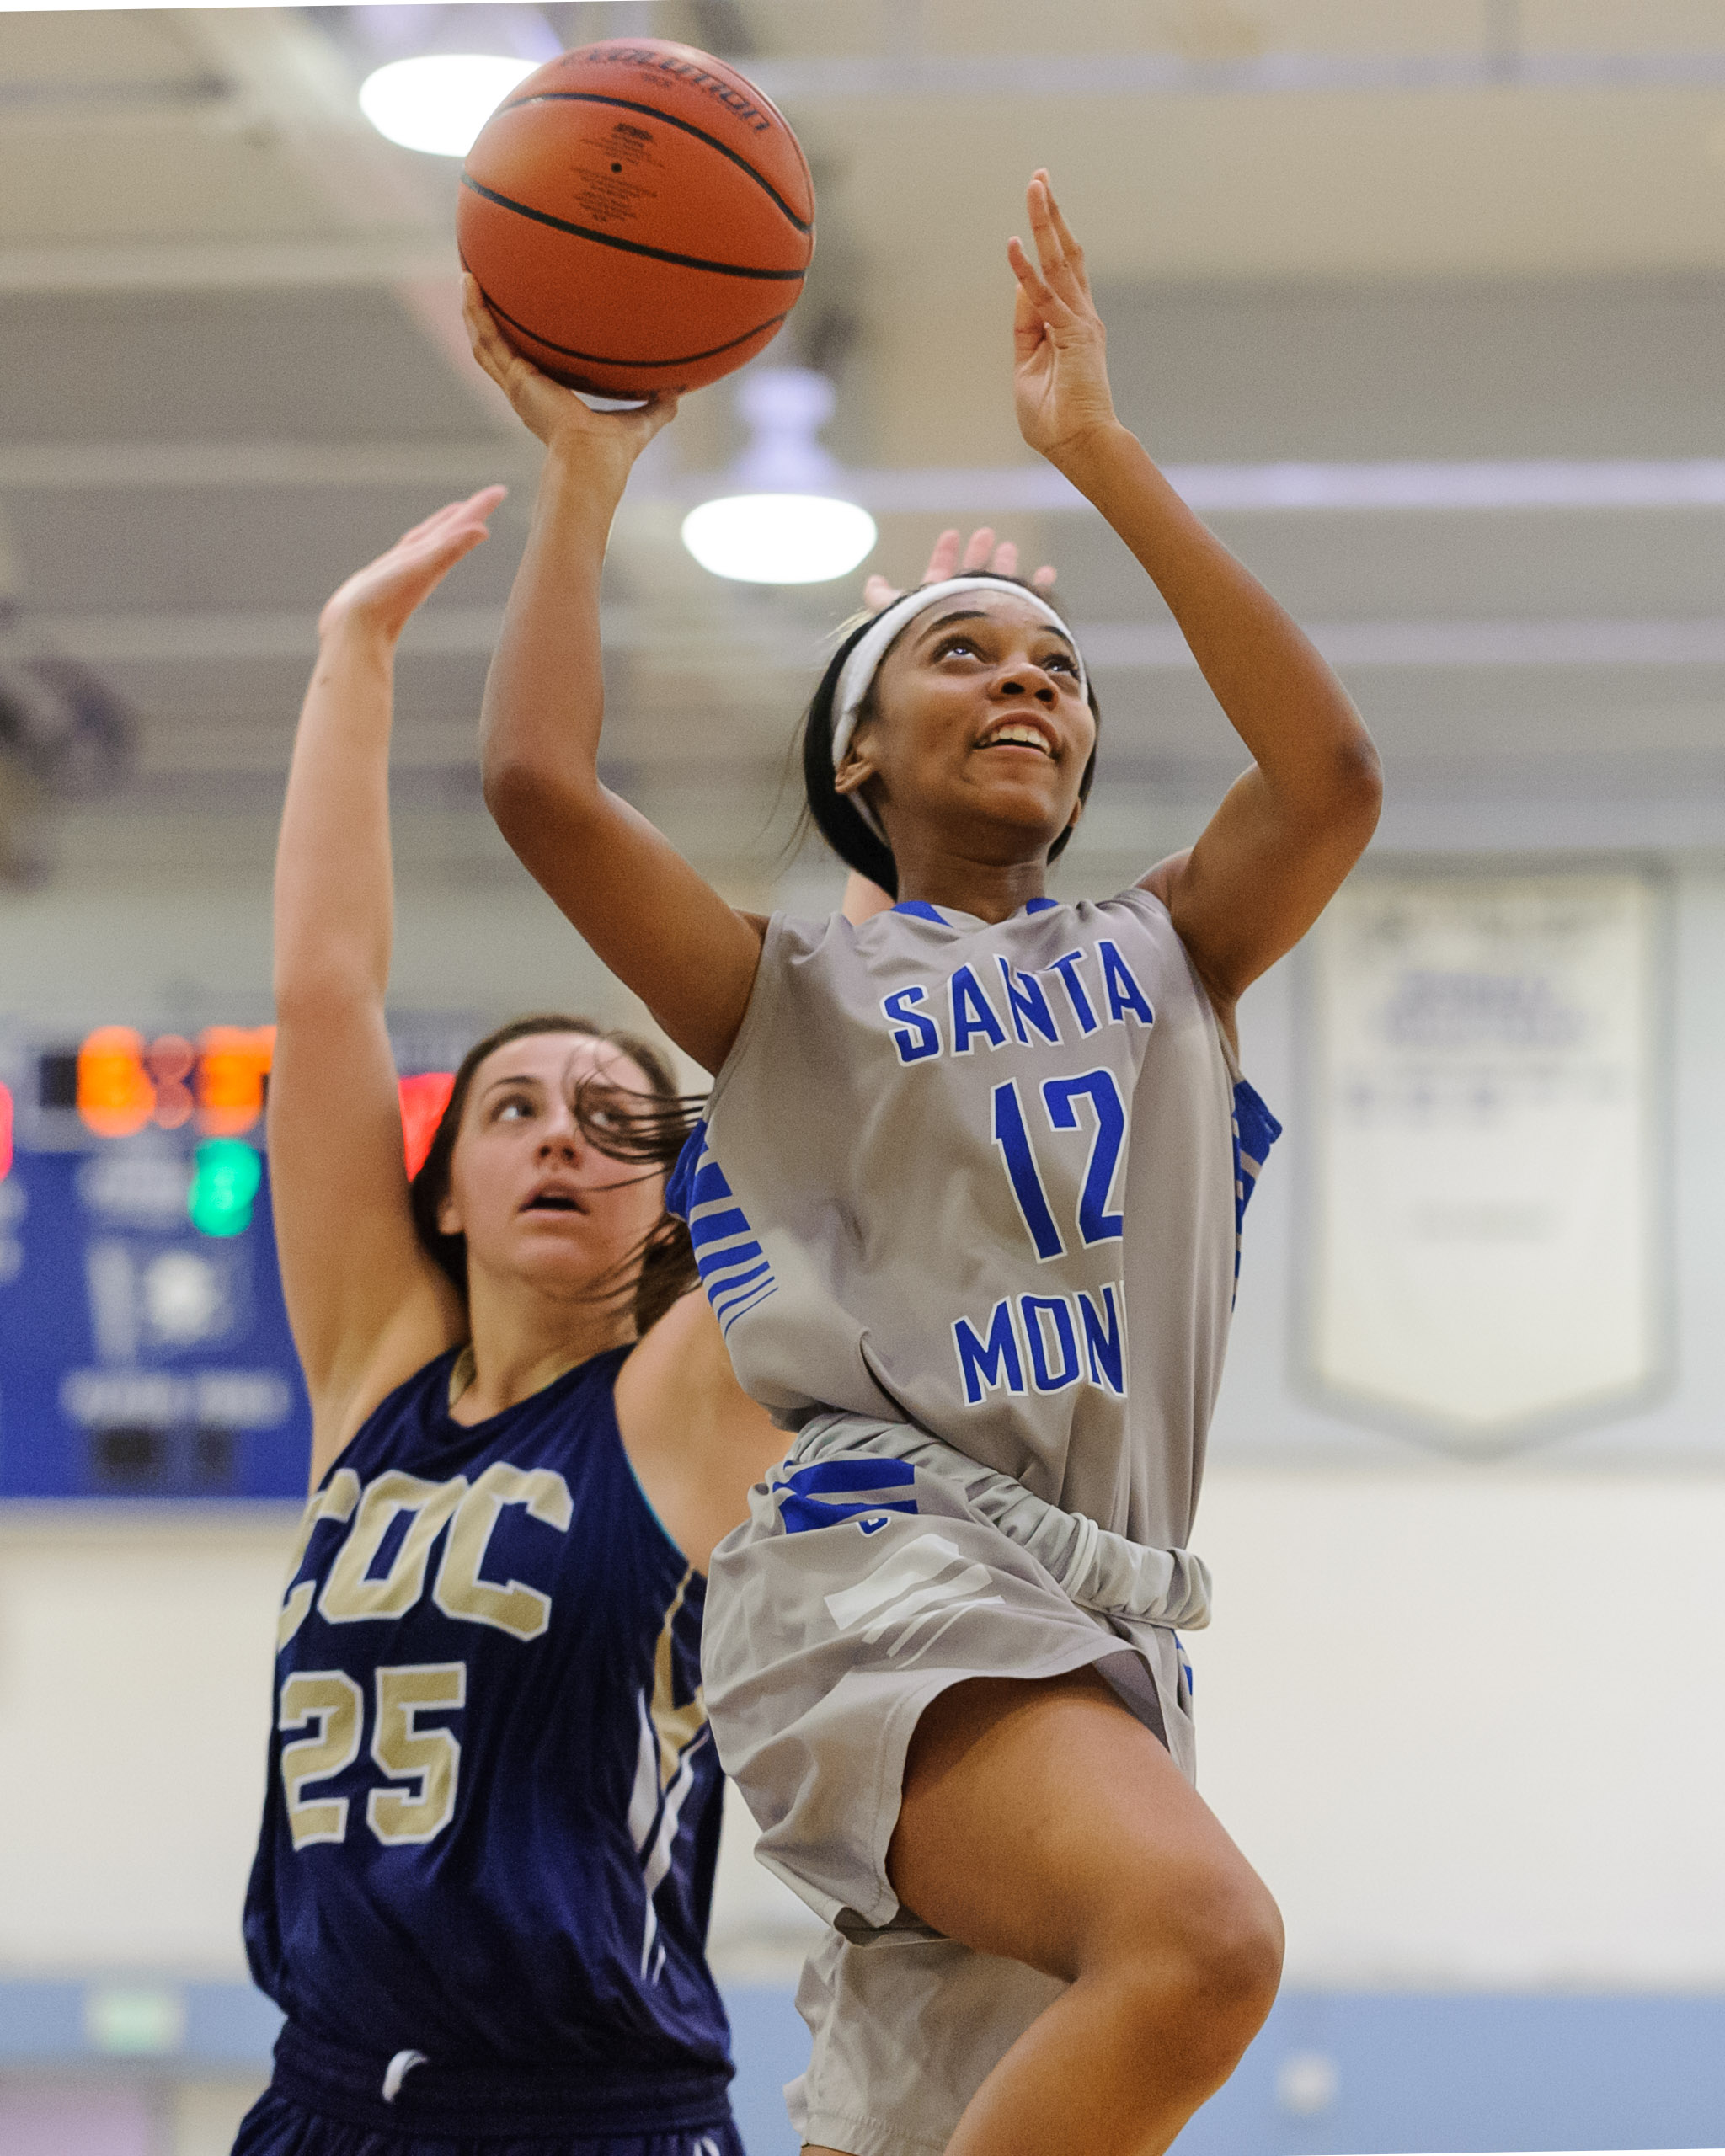 Forward Jazzmin Oddie (12,Right) of Santa Monica College passes Kalli Self (25,Left) of the College of the Canyons and soars towards the basket for a shot. The Santa Monica College Corsairs lose the game 108-70 to the College of the Canyons Cougars. The game was held at the SMC Pavilion at the Santa Monica College Main Campus in Santa Monica, Calif.. February 10, 2018. (Photo by: Justin Han/Corsair Staff)